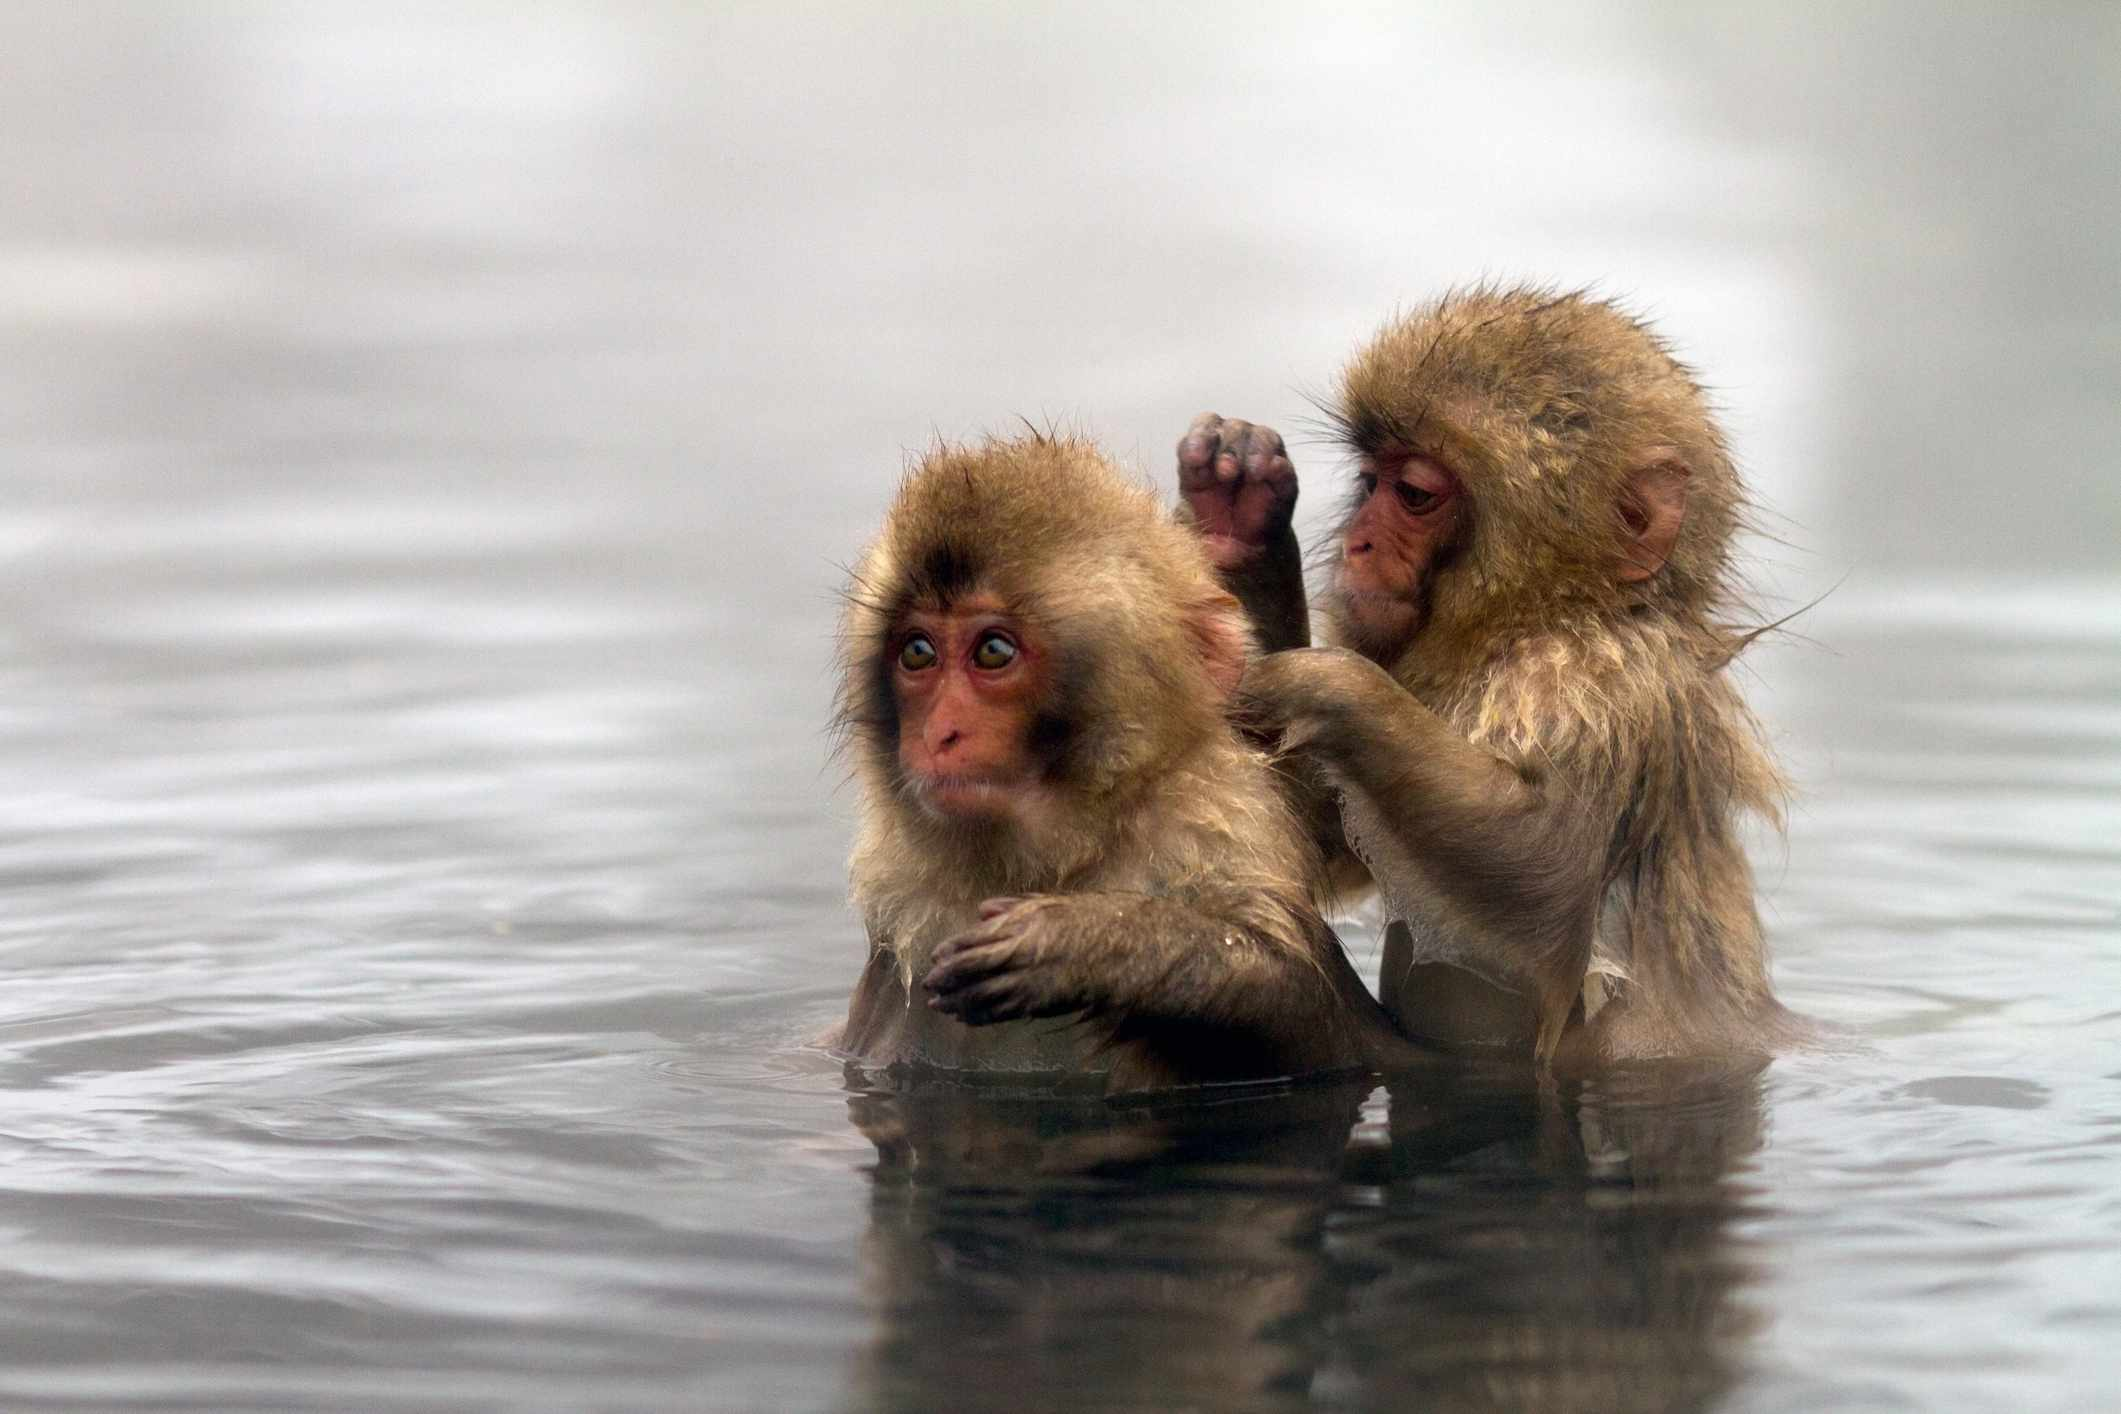 Two Japanese macaques standing in water, one cleaning the other